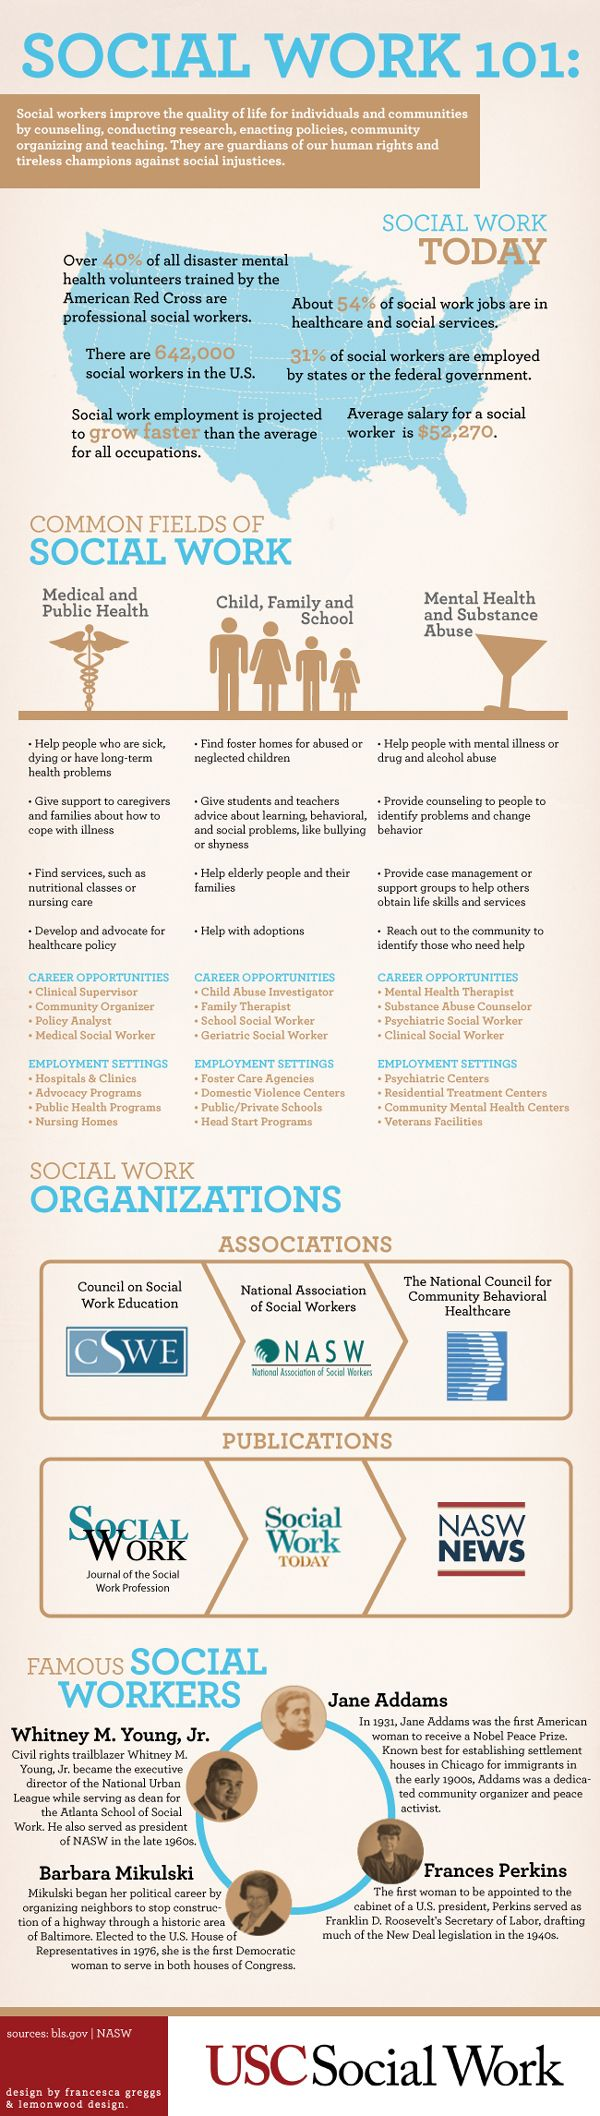 Social Work101: Considering a career in social work?  Here is a quick understanding of the profession, and the varying roles social workers play in our world. This infographic breaks down where 642,000 American social workers are employed, details about three common fields of practice and profiles four famous social workers who were pioneers in the field.